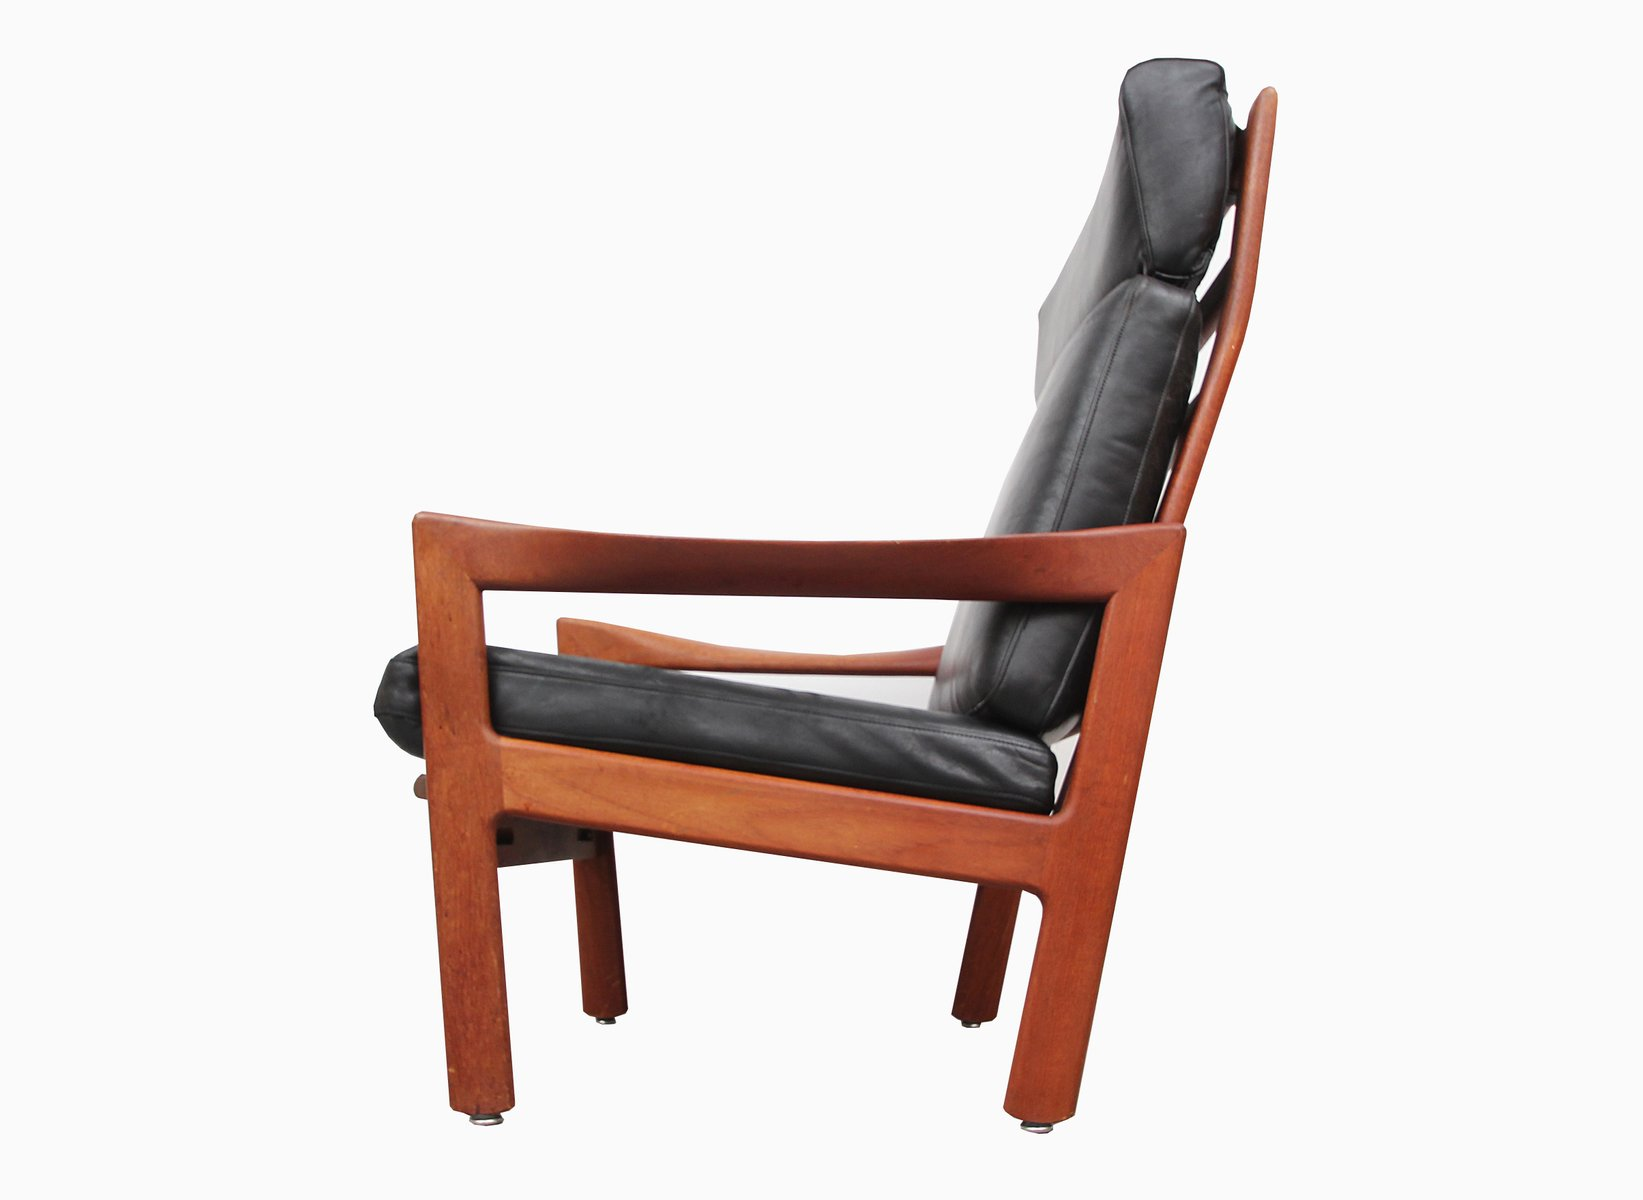 Teak Highback Armchair by Illum Wikkelso for Niels Eilersen 1960s